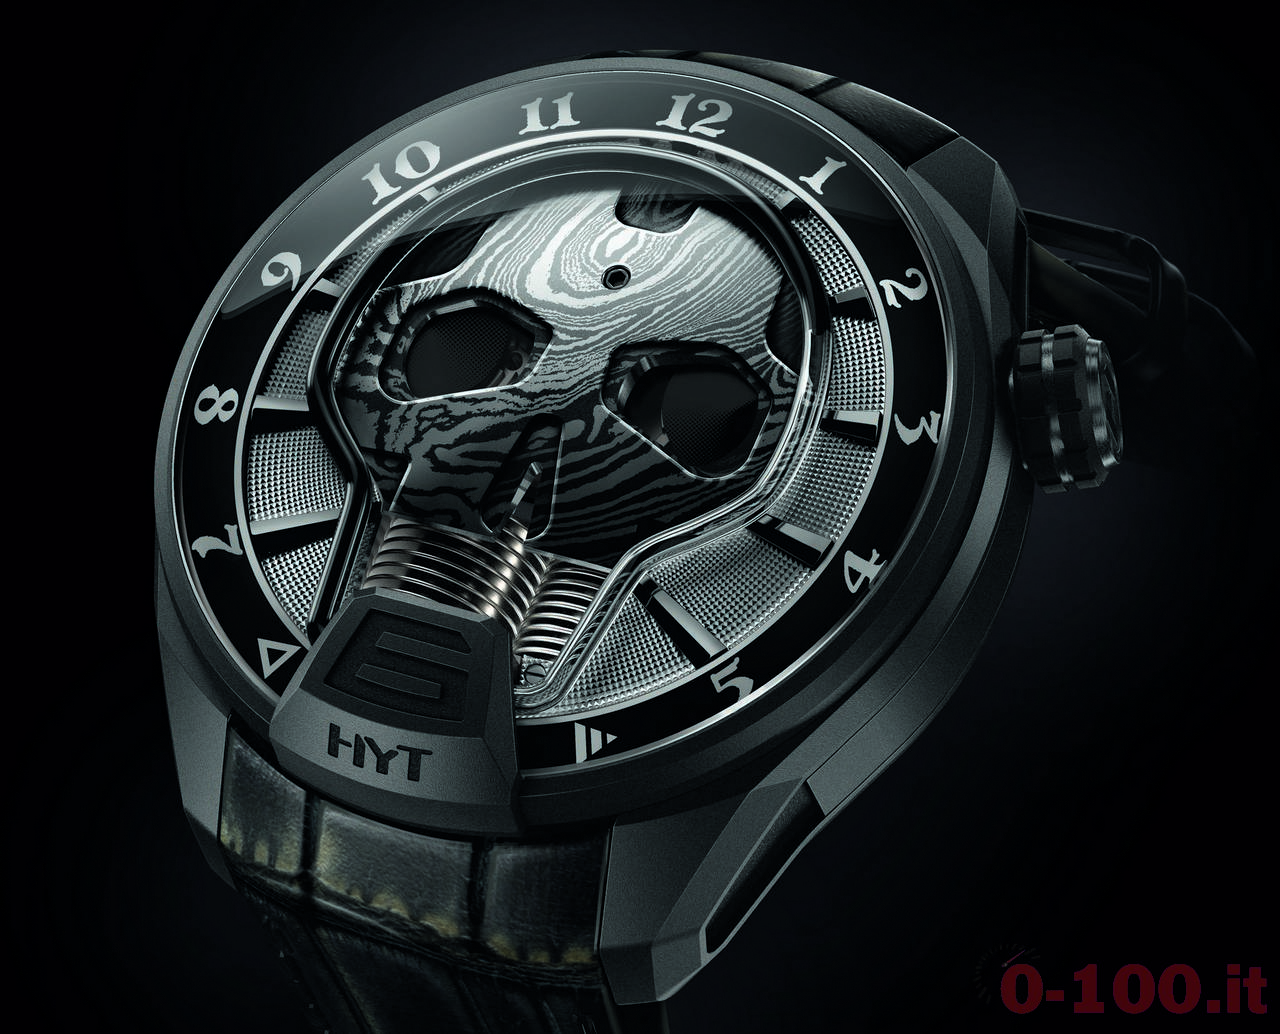 baselworld-2016-hyt-skull-bad-boy-prezzo-price_0-1001